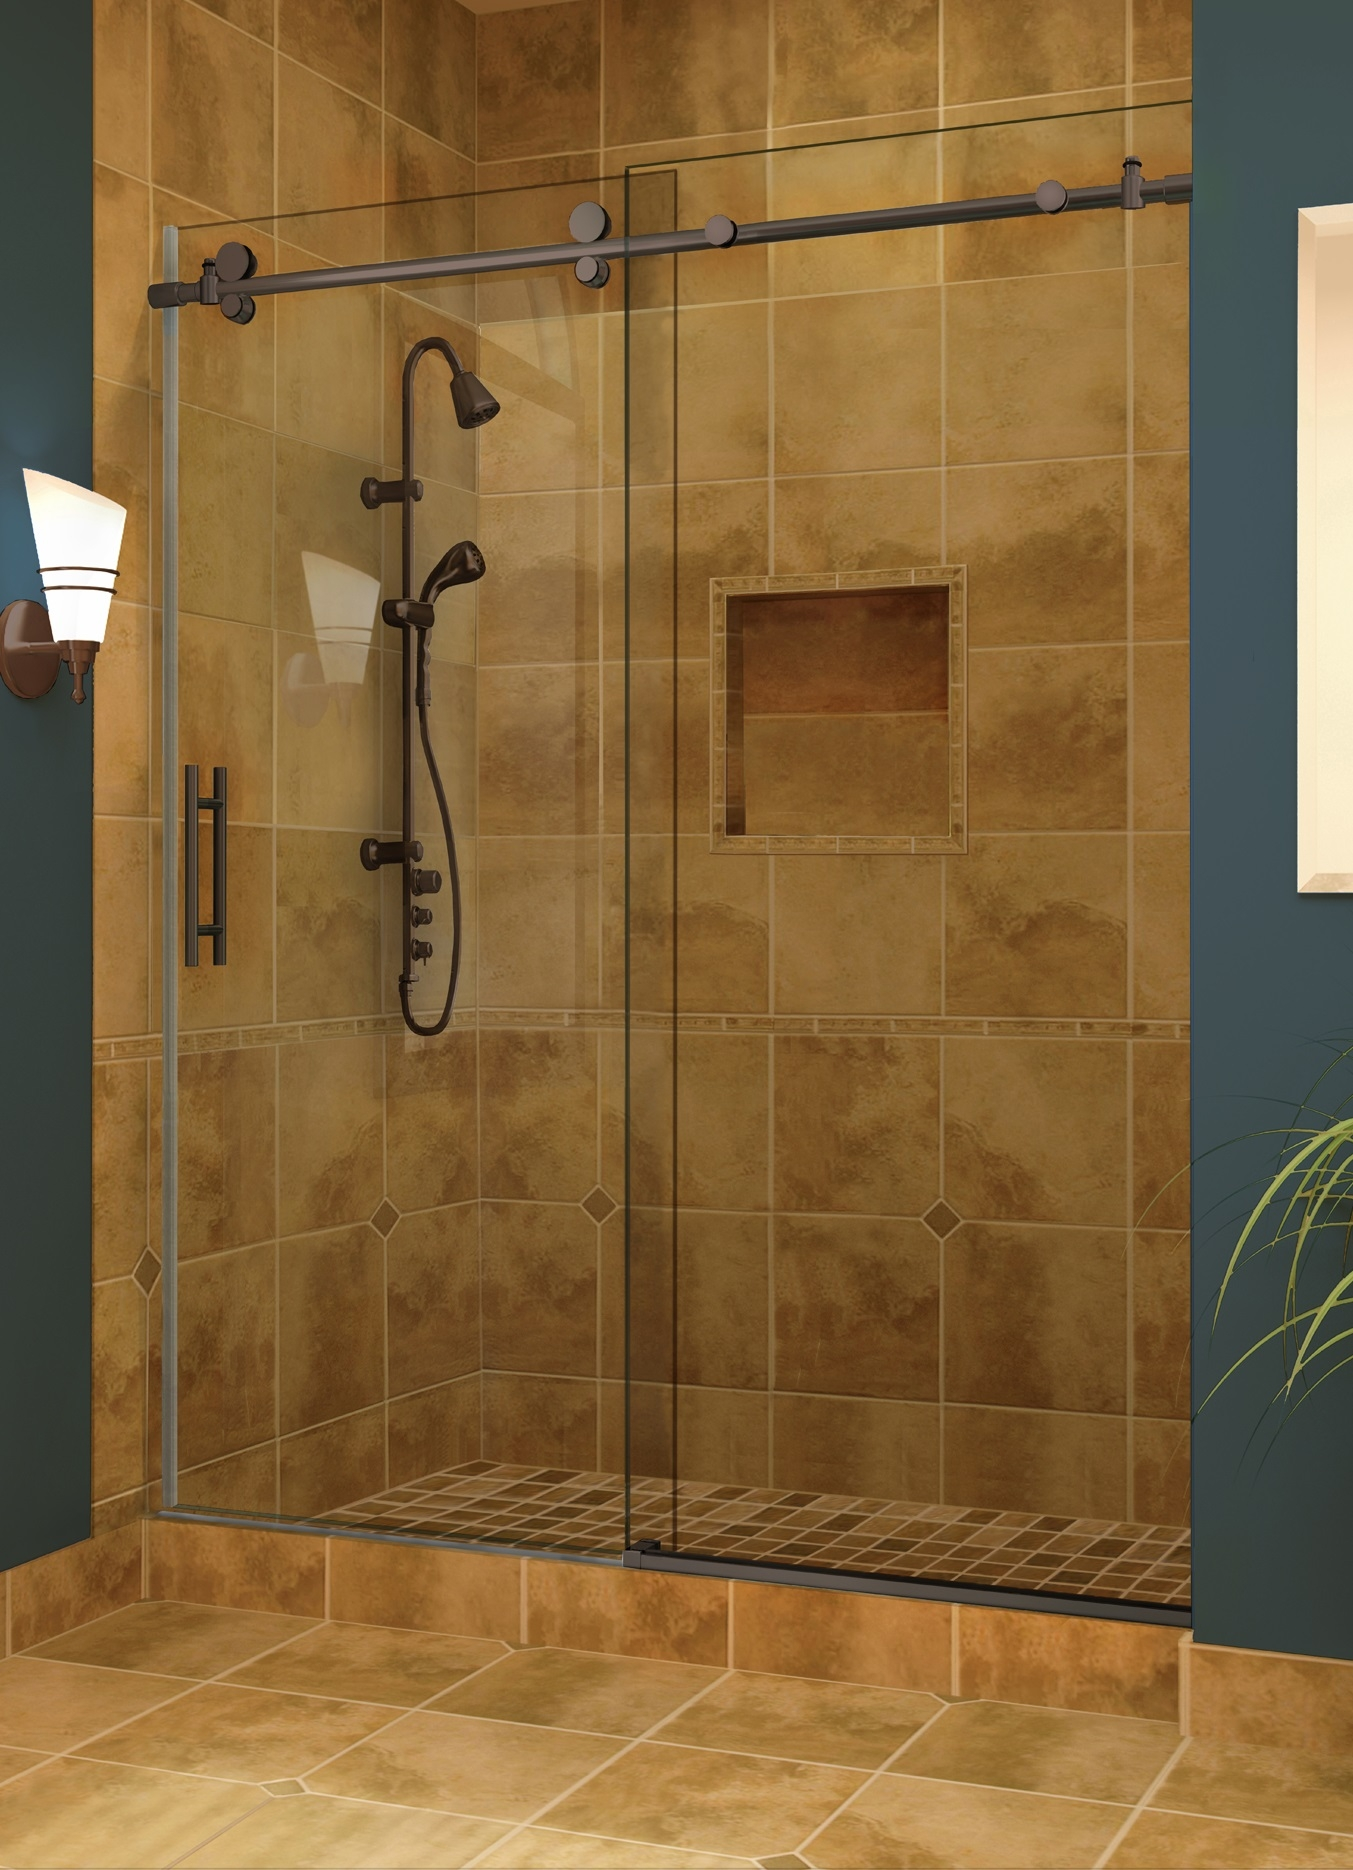 Single Panel Sliding Shower DoorSingle Panel Sliding Shower Door